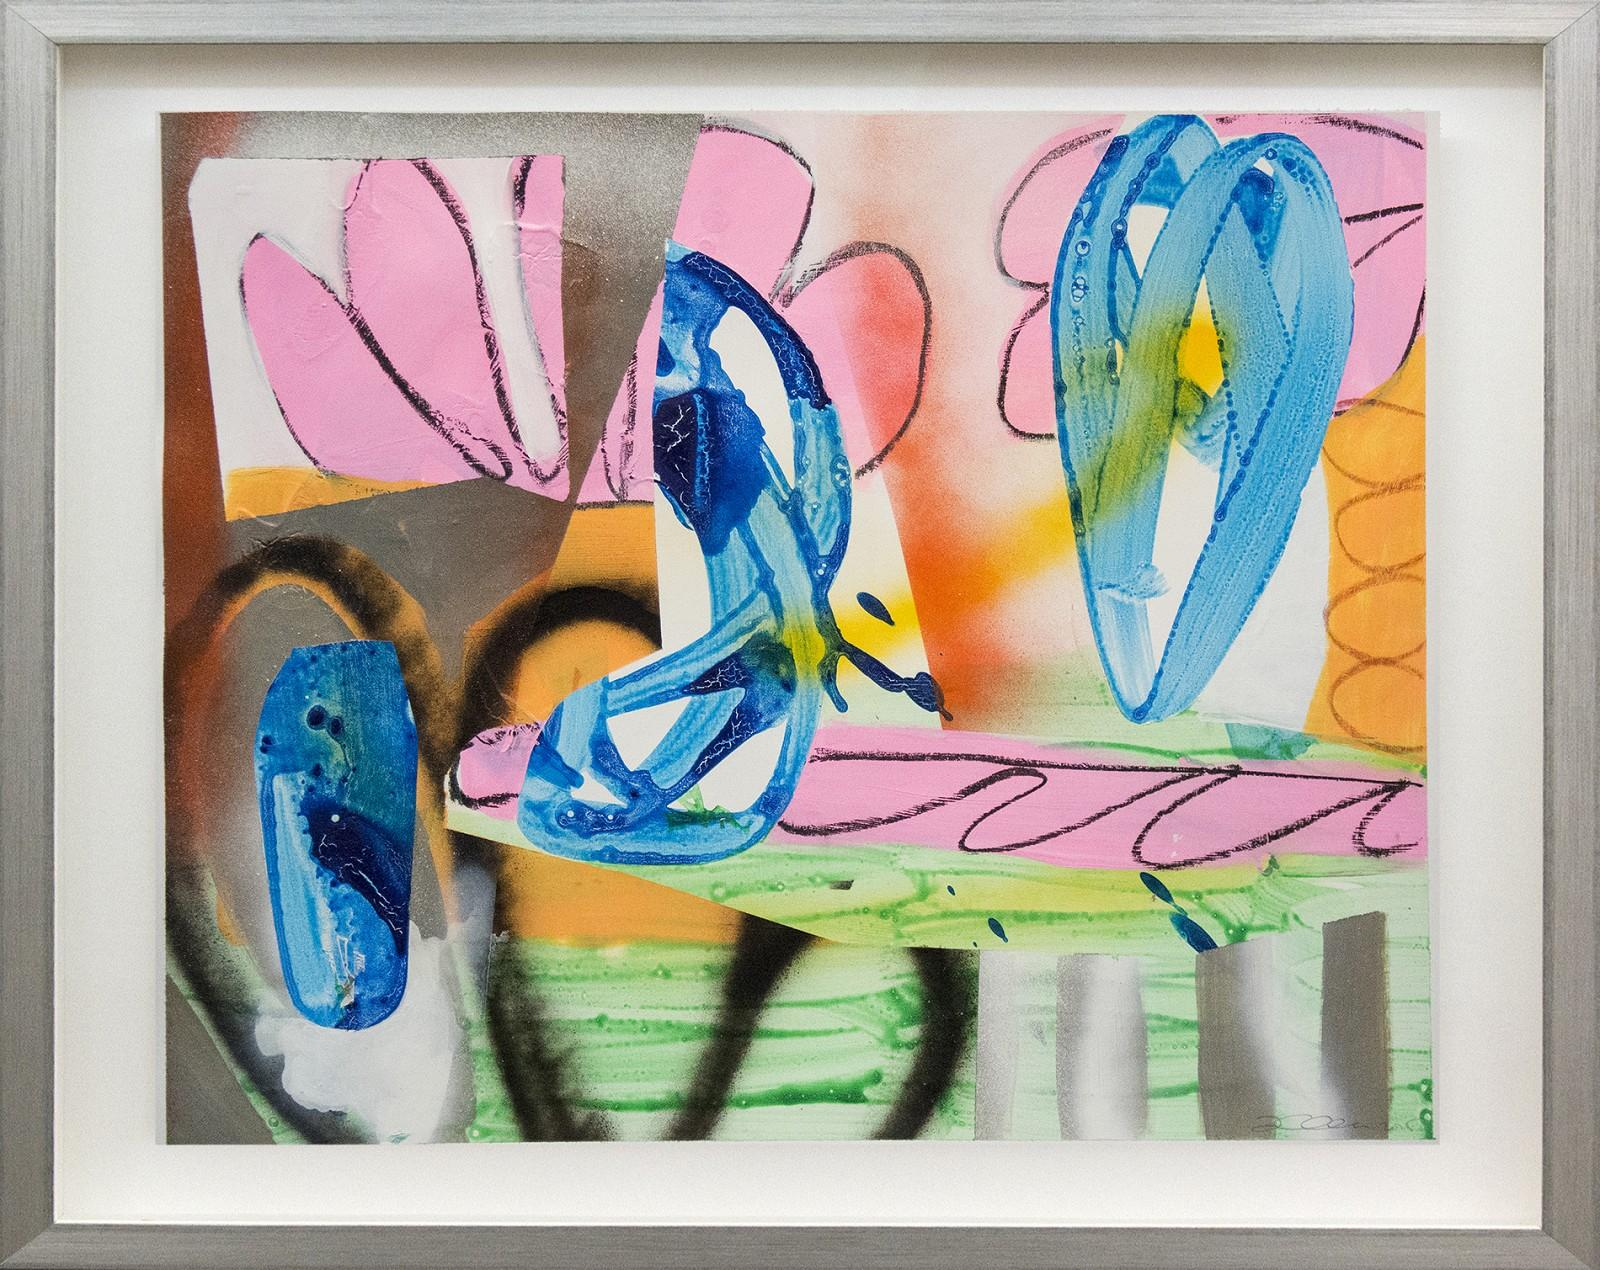 Composition No 14 - plant-like collaged shapes in pink, orange, blue, and green